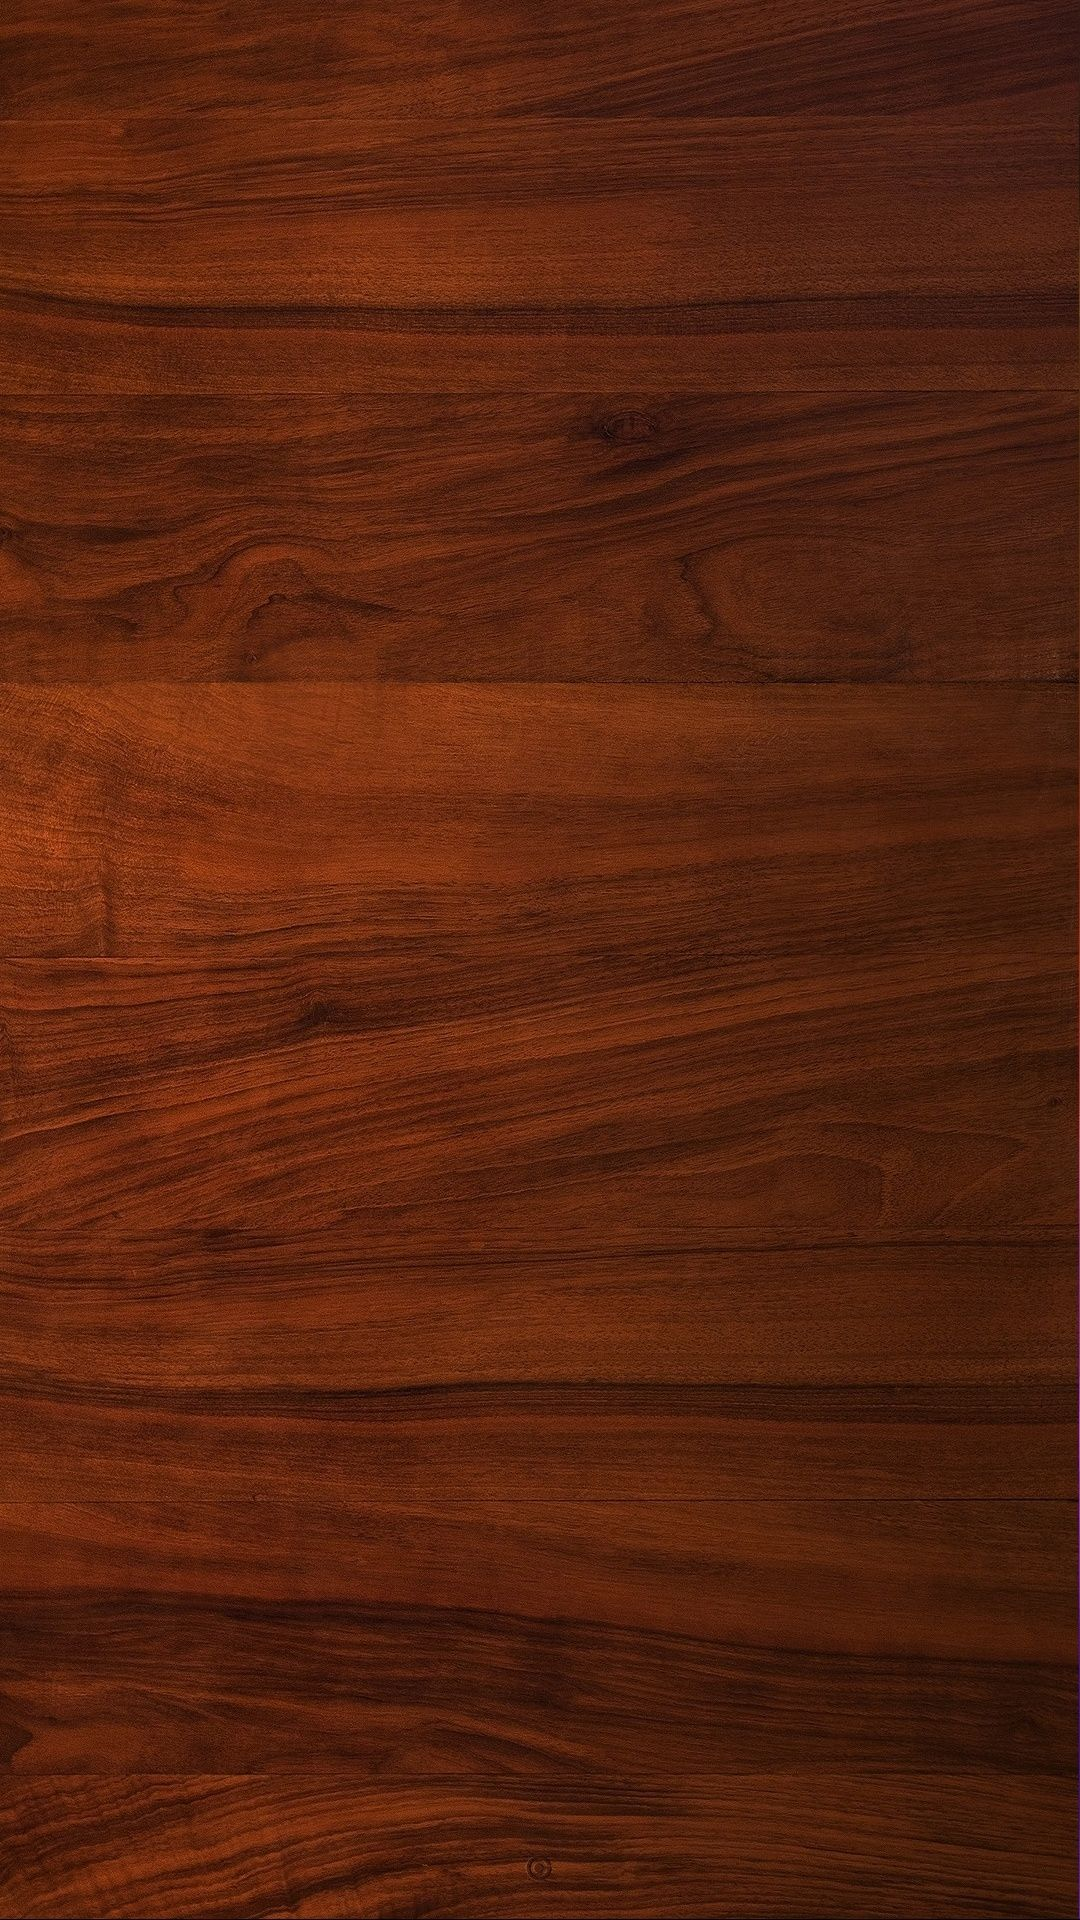 Cherry Wood Pattern Texture iPhone 6 Plus HD Wallpaper